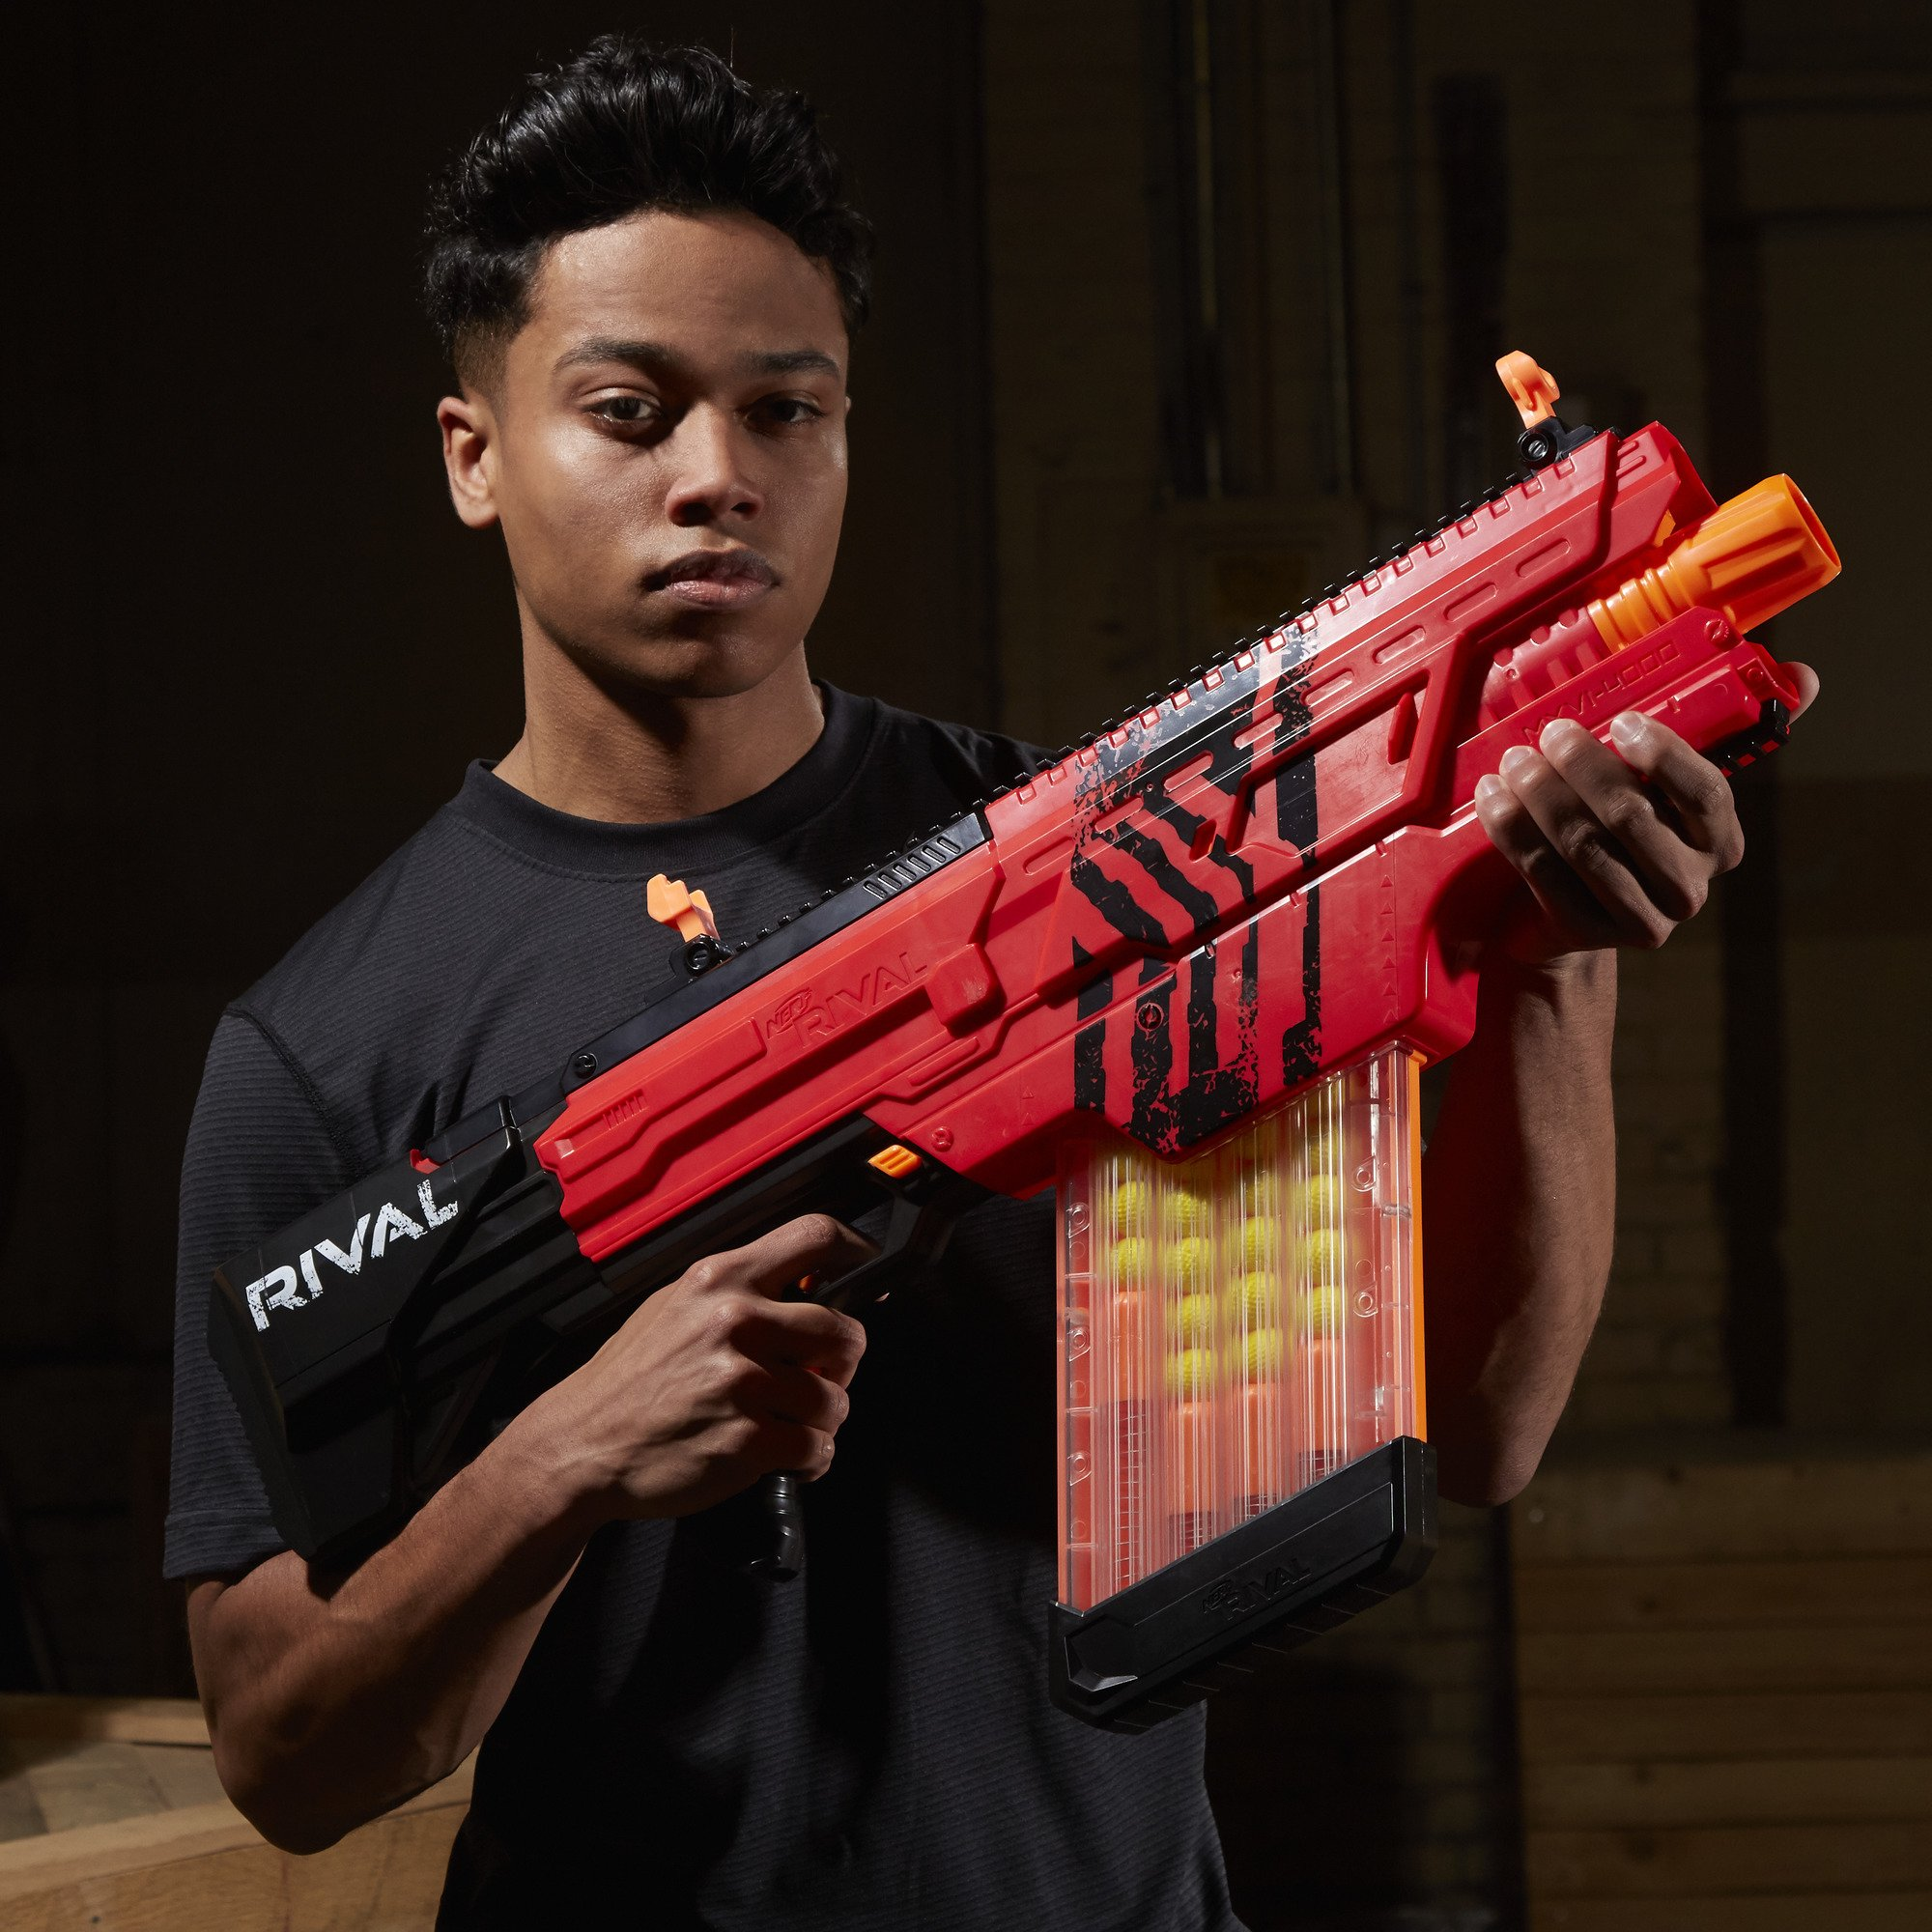 Nerf Rival Khaos MXVI-4000 Blaster (Red) by NERF (Image #15)